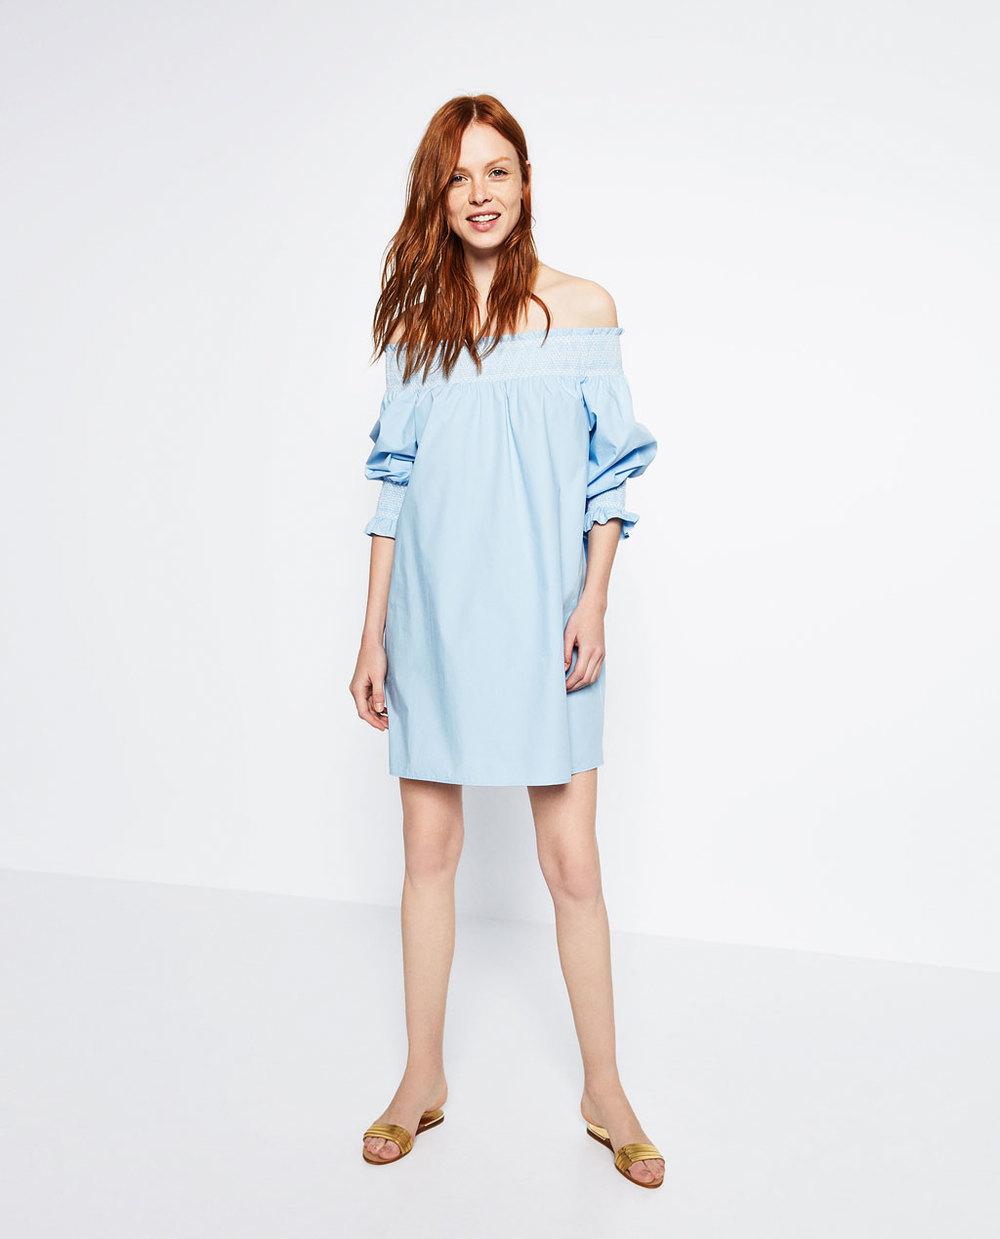 zara off the shoulder tunic.jpg